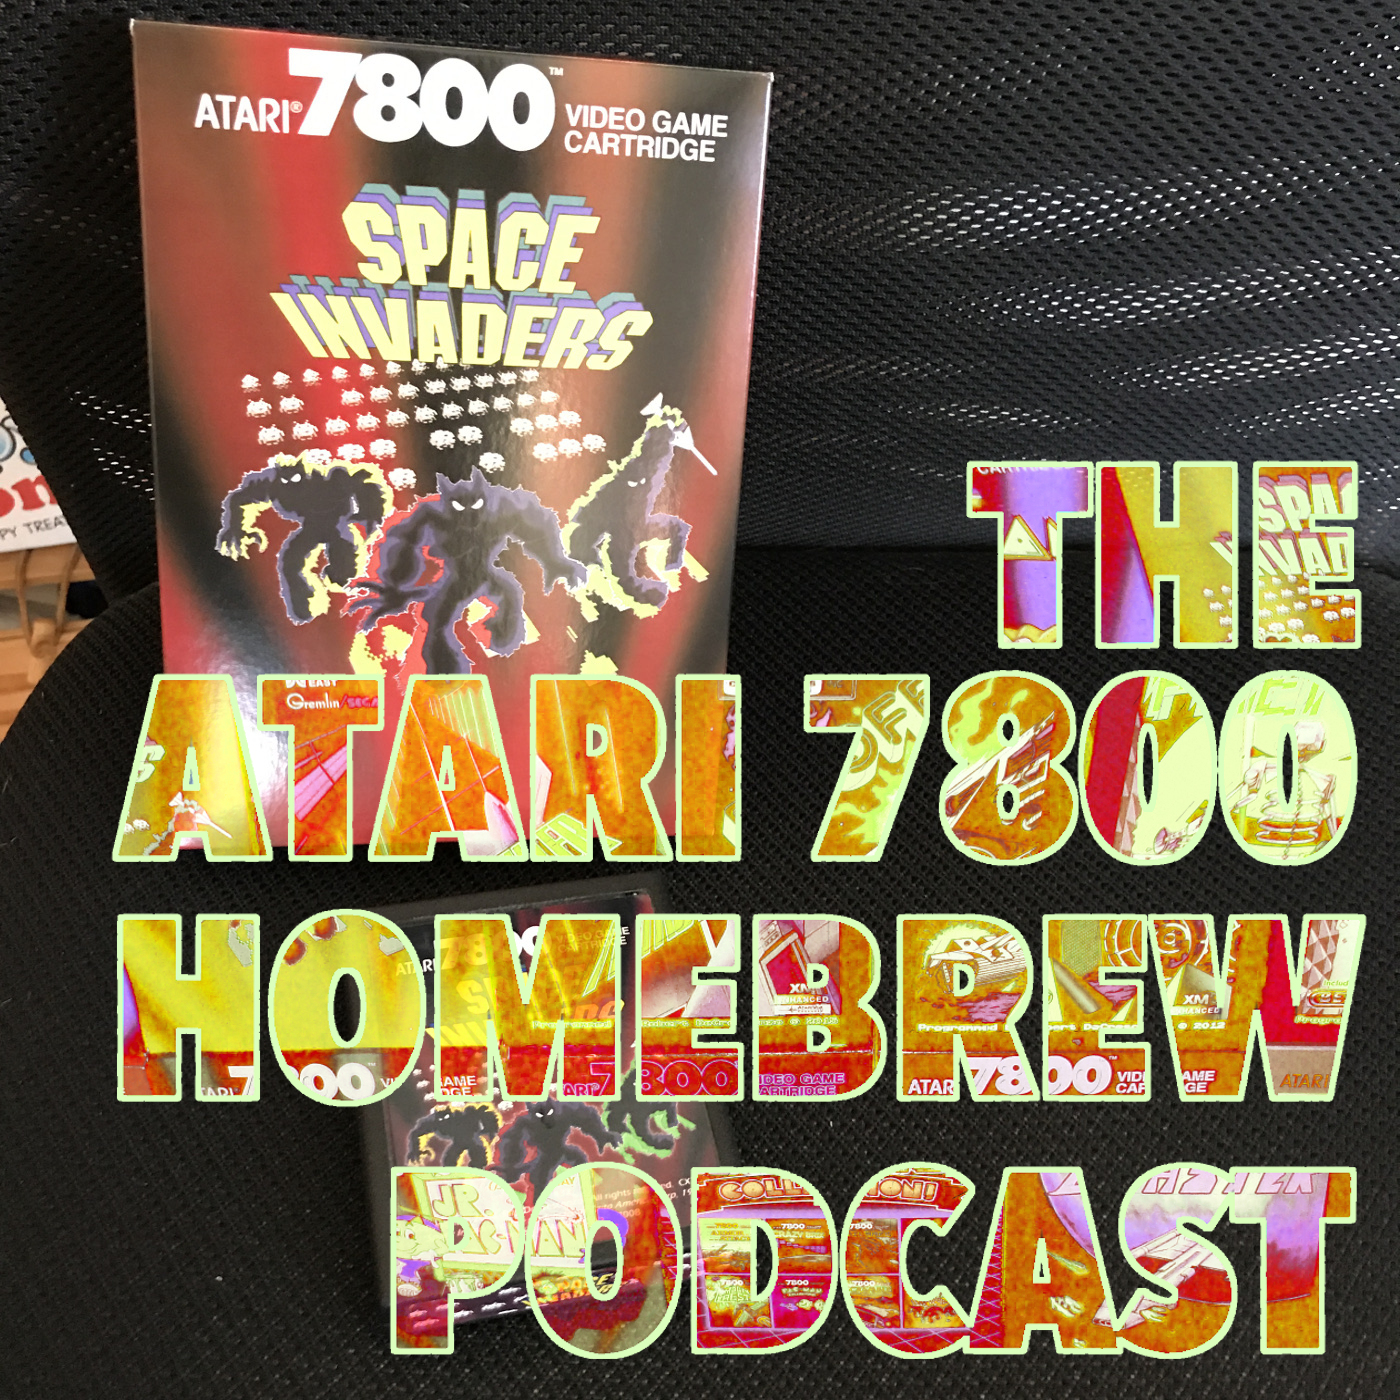 Episode 9: Space Invaders